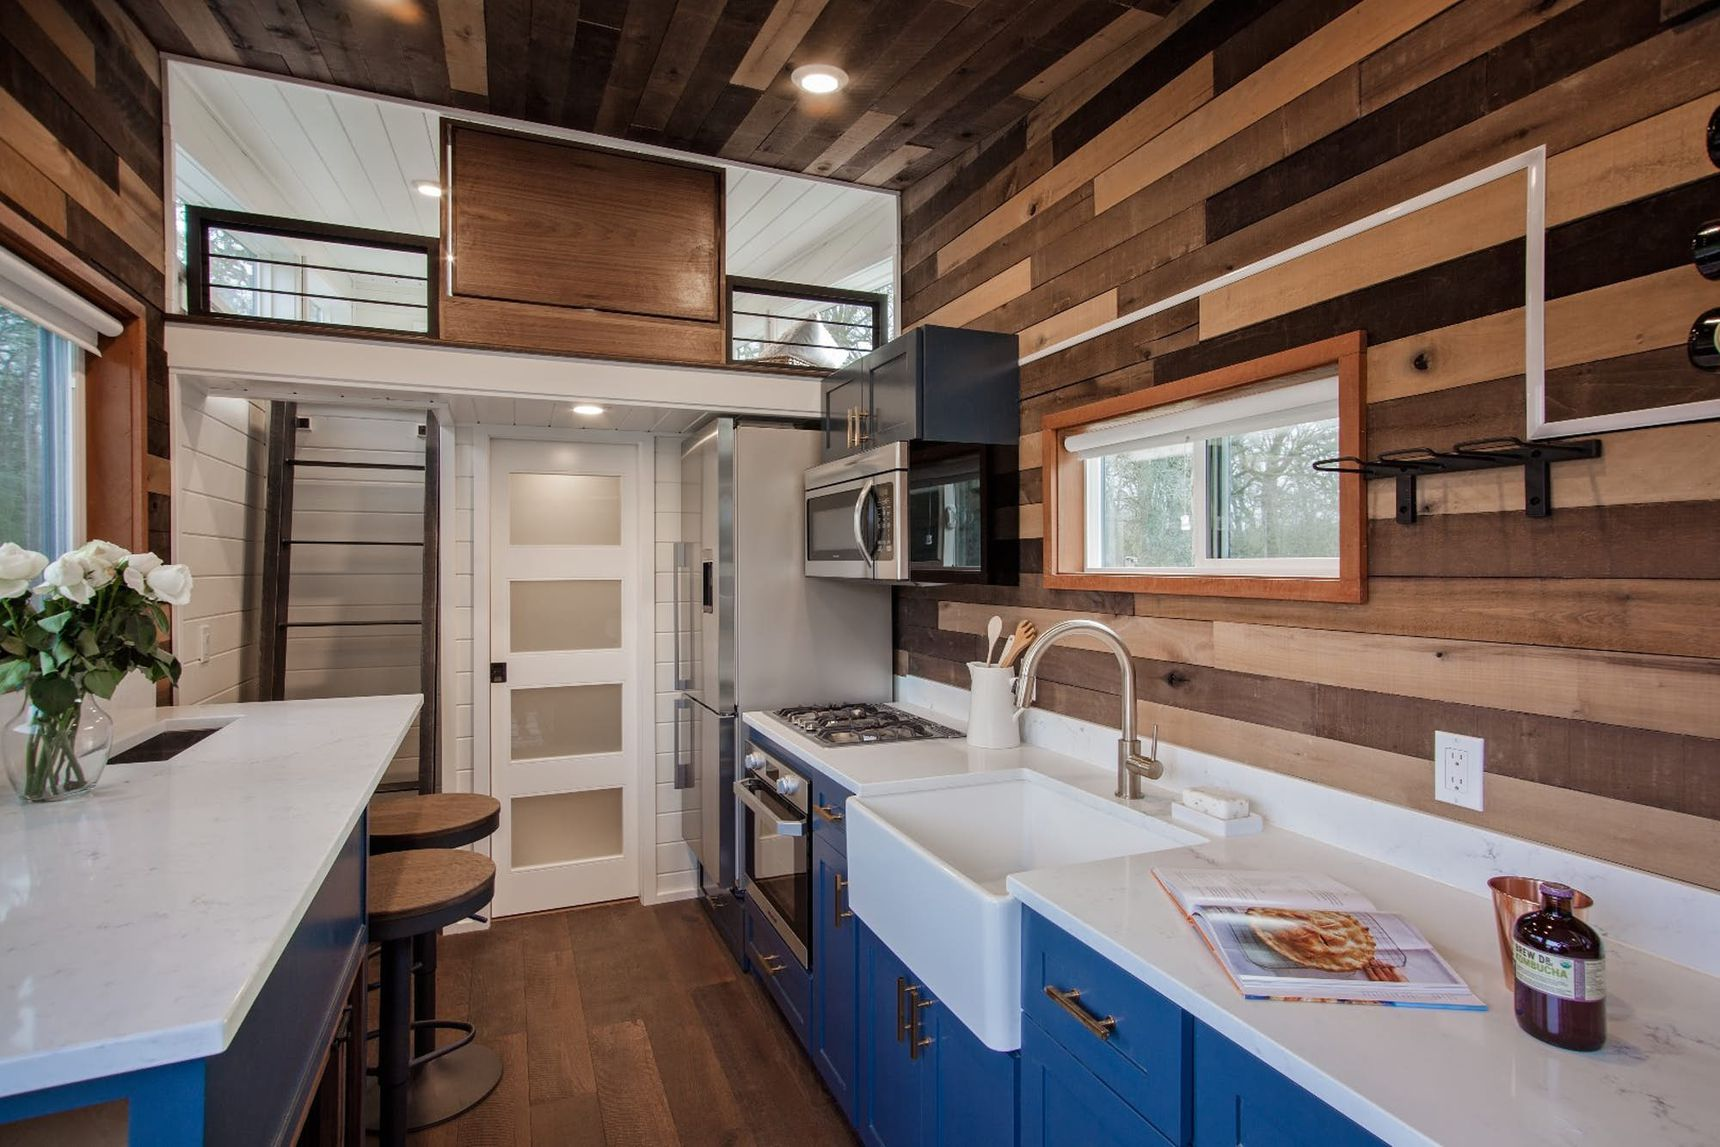 Top Tiny Homes - Breezeway Kitchen